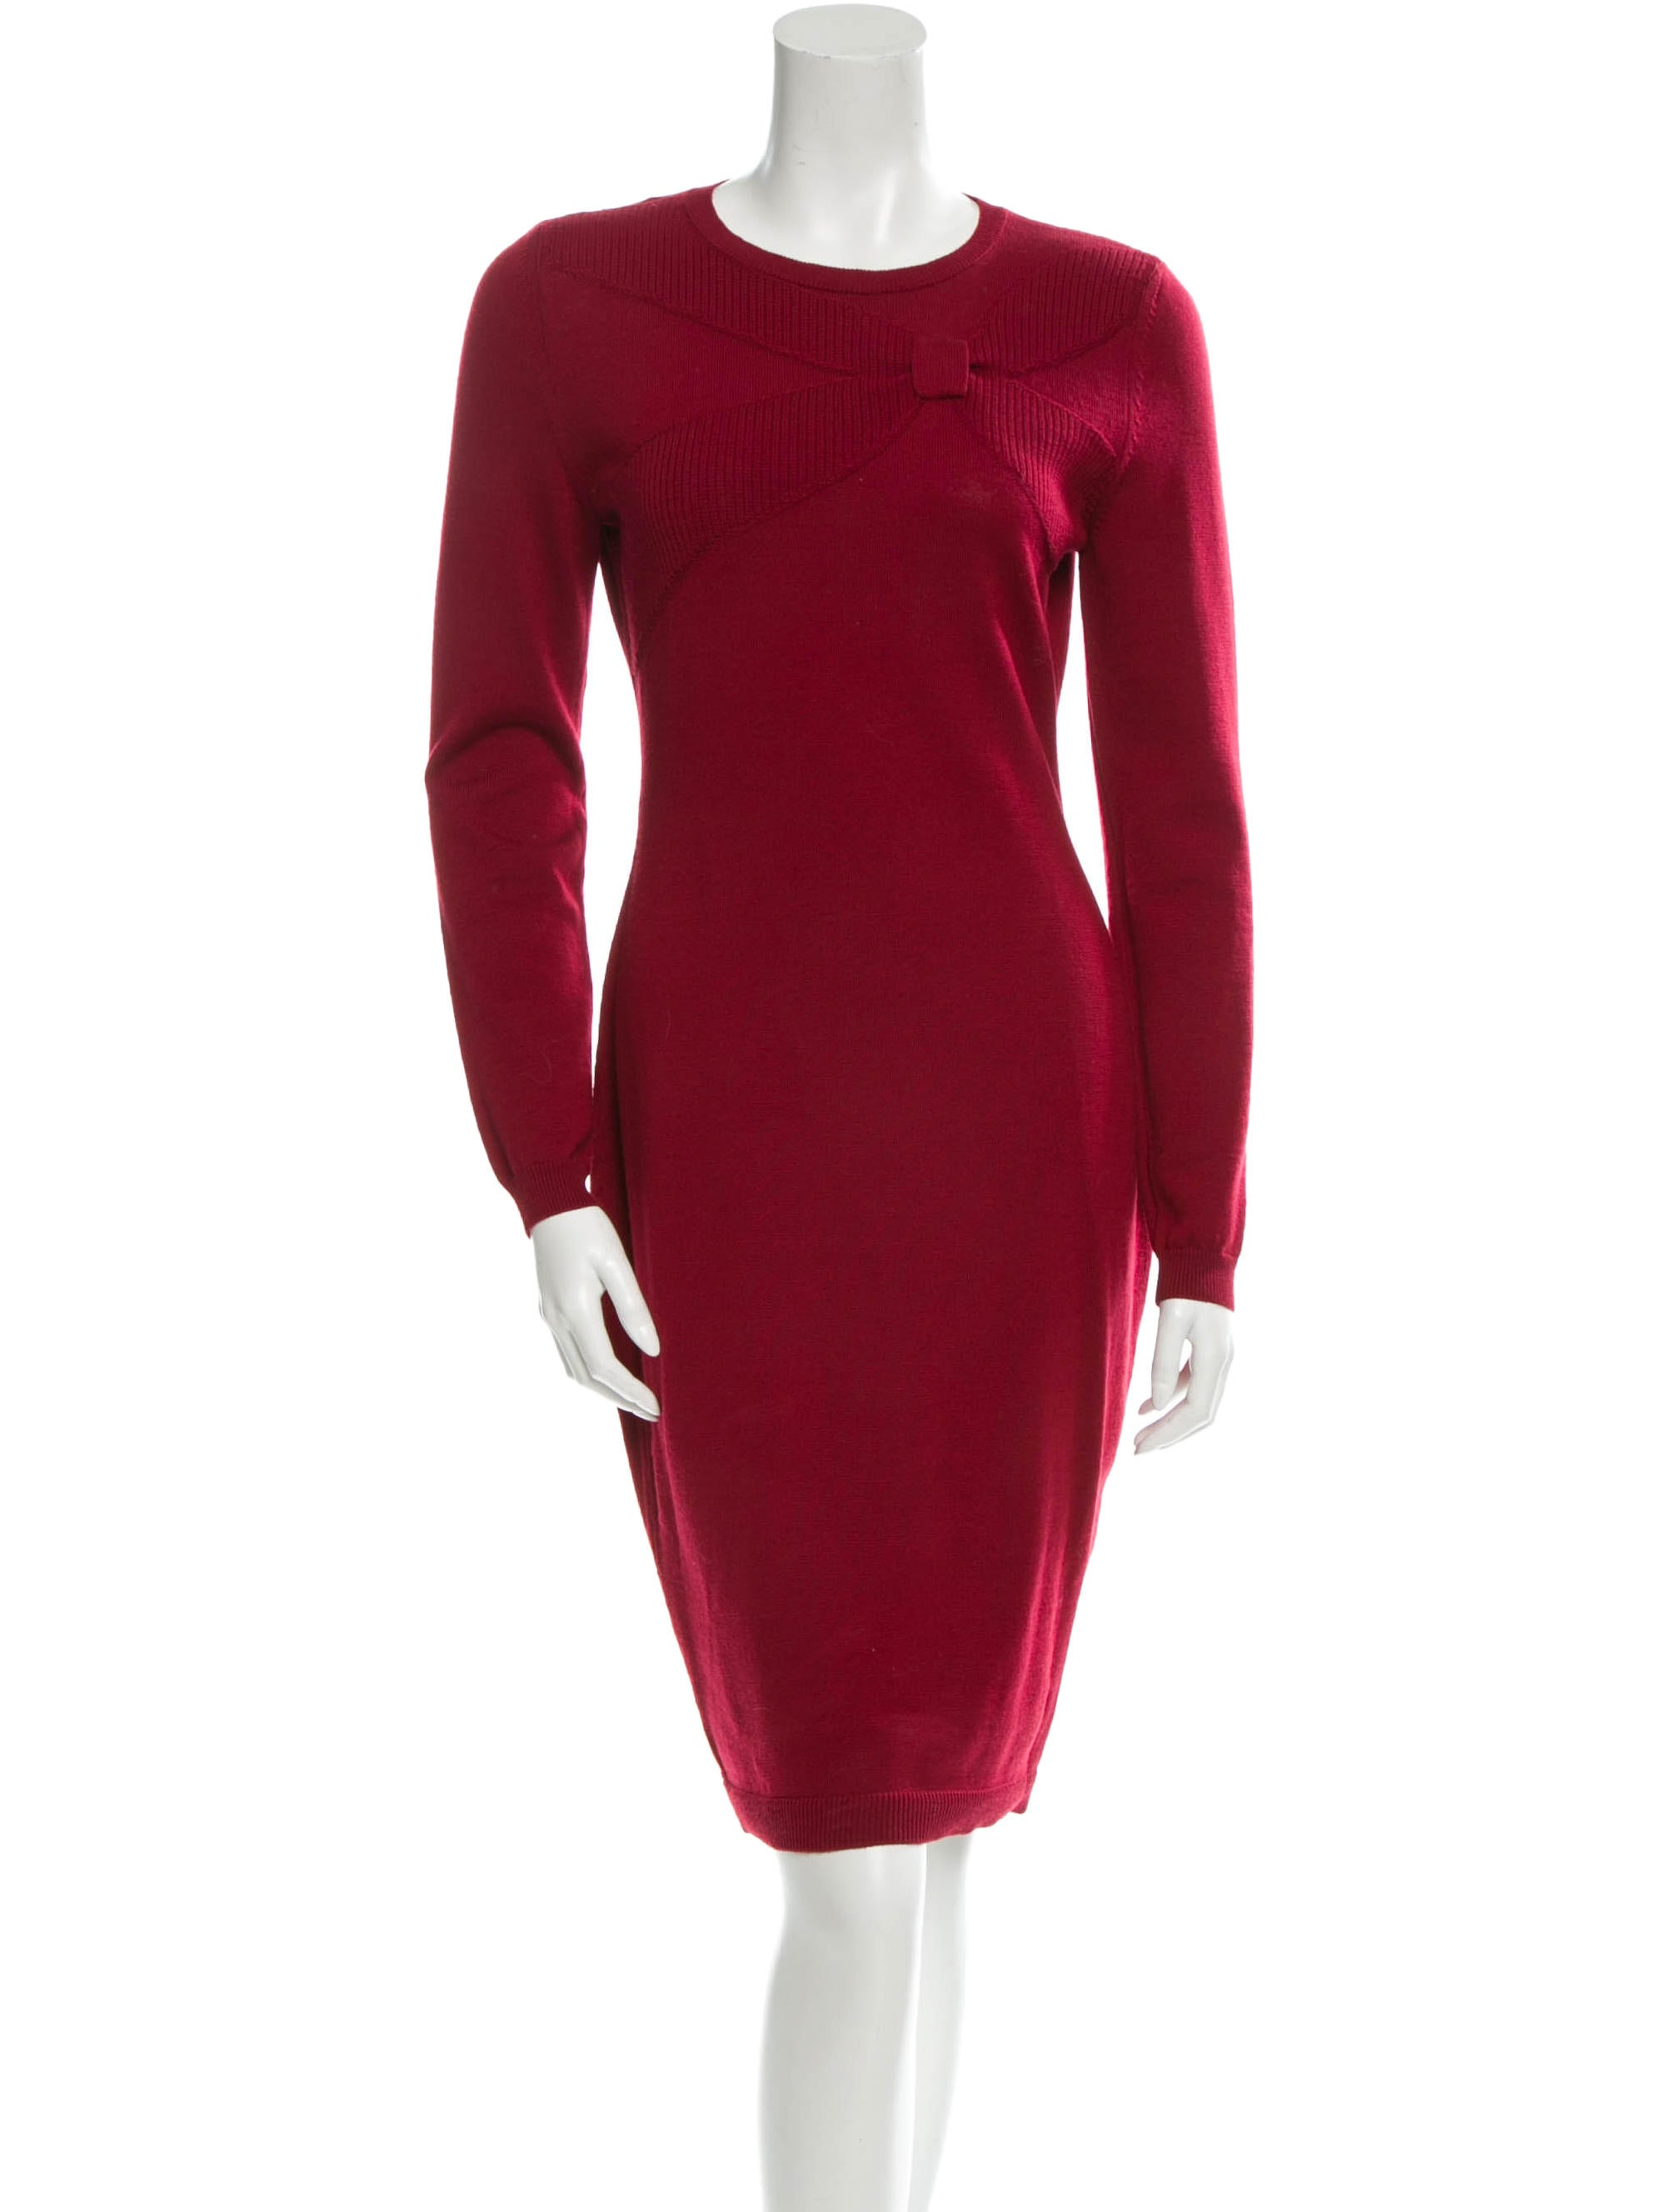 Red Valentino Wool Sweater Dress - Clothing - WRE23529 | The RealReal